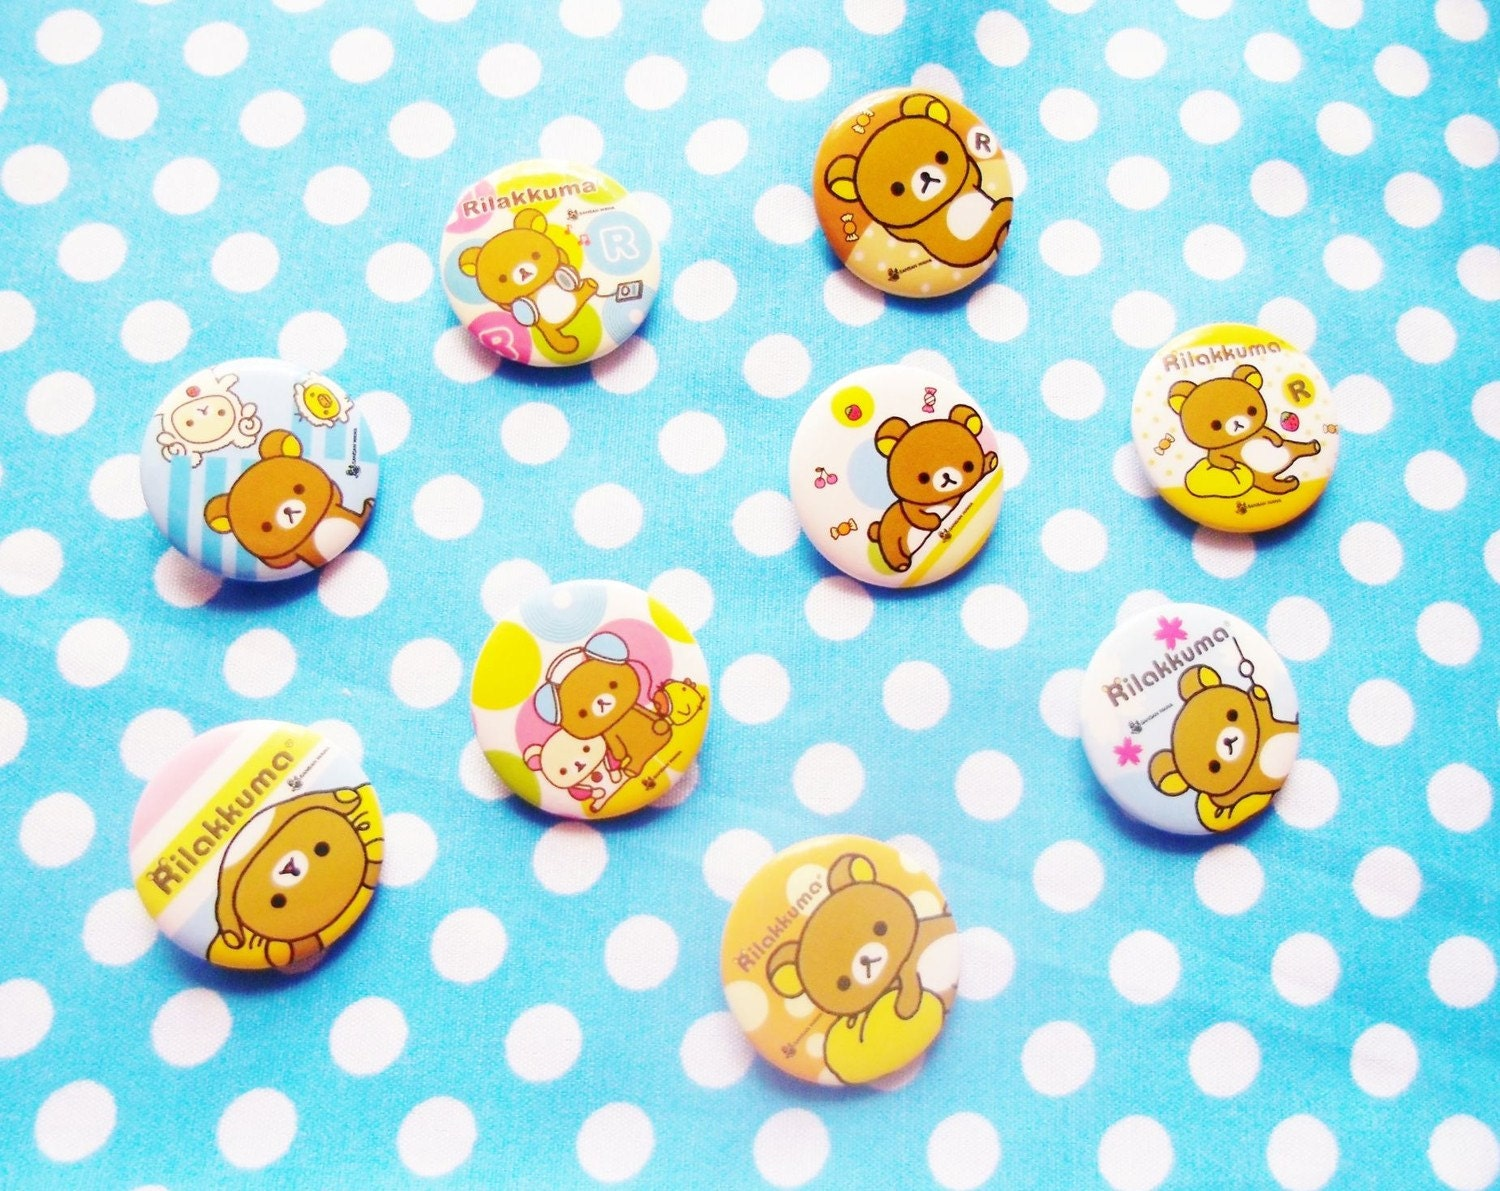 Kawaii Rilakkuma Relax Bear PINS